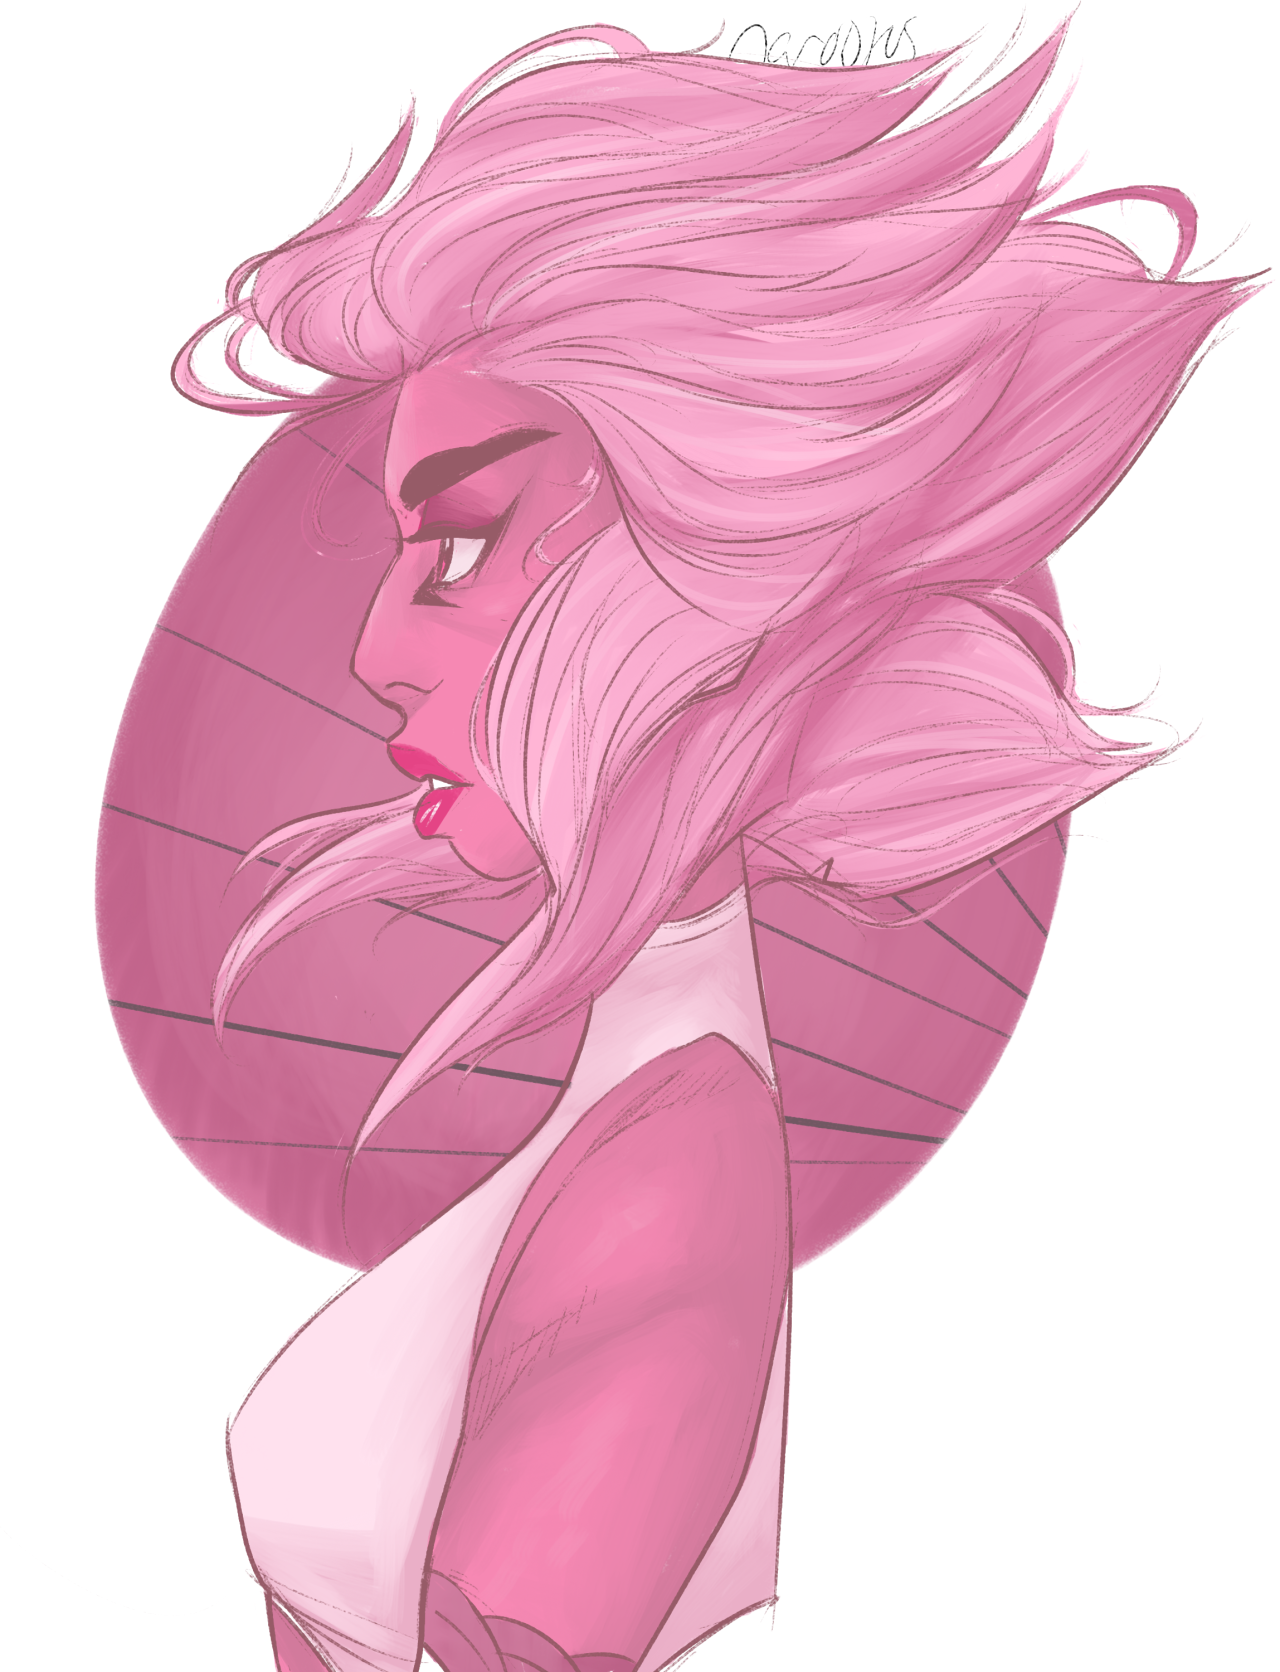 drew a pink diamond design !